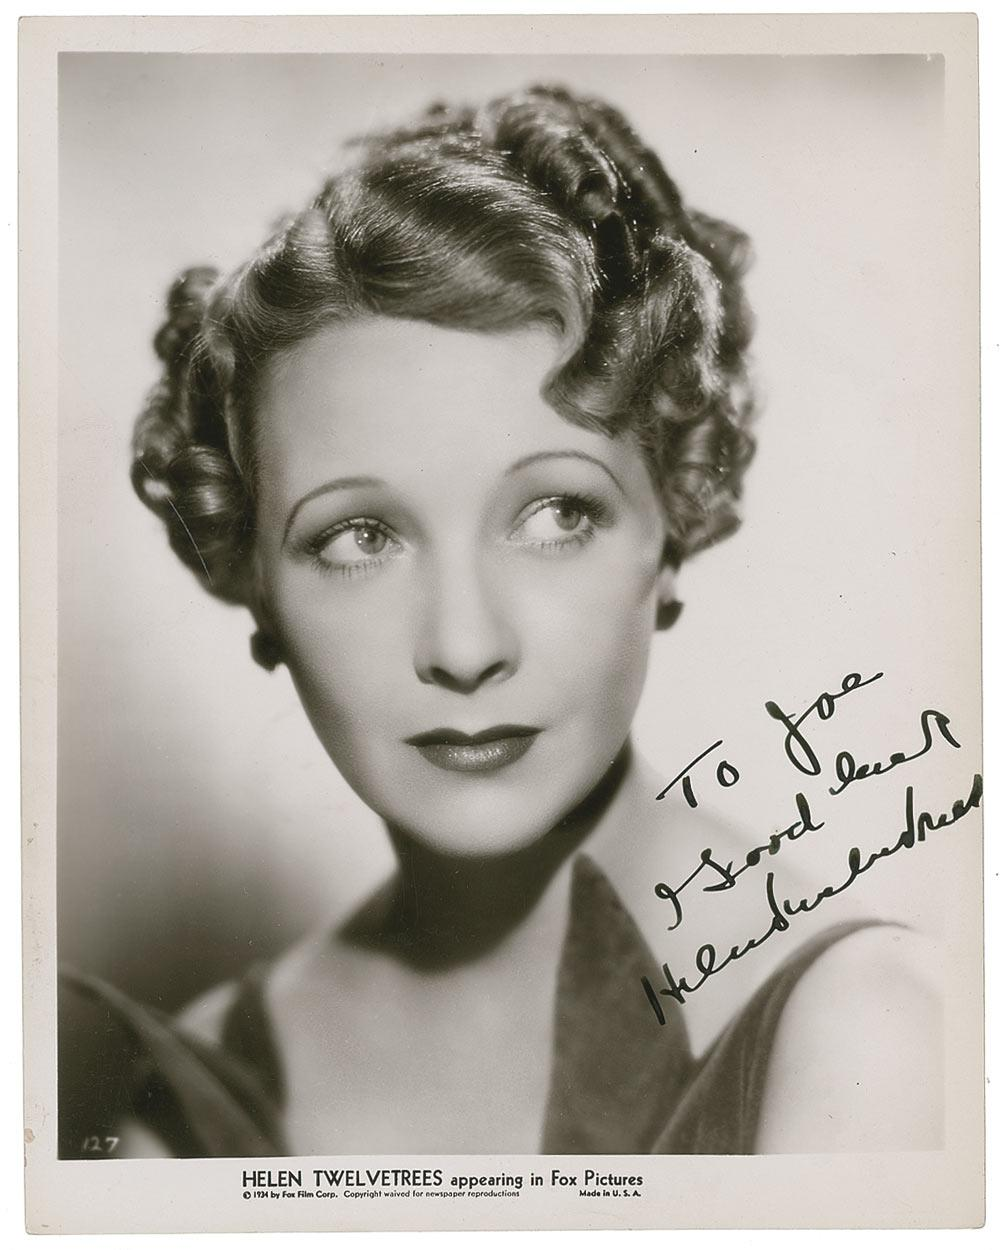 Helen Twelvetrees nudes (41 foto and video), Tits, Cleavage, Boobs, cameltoe 2017